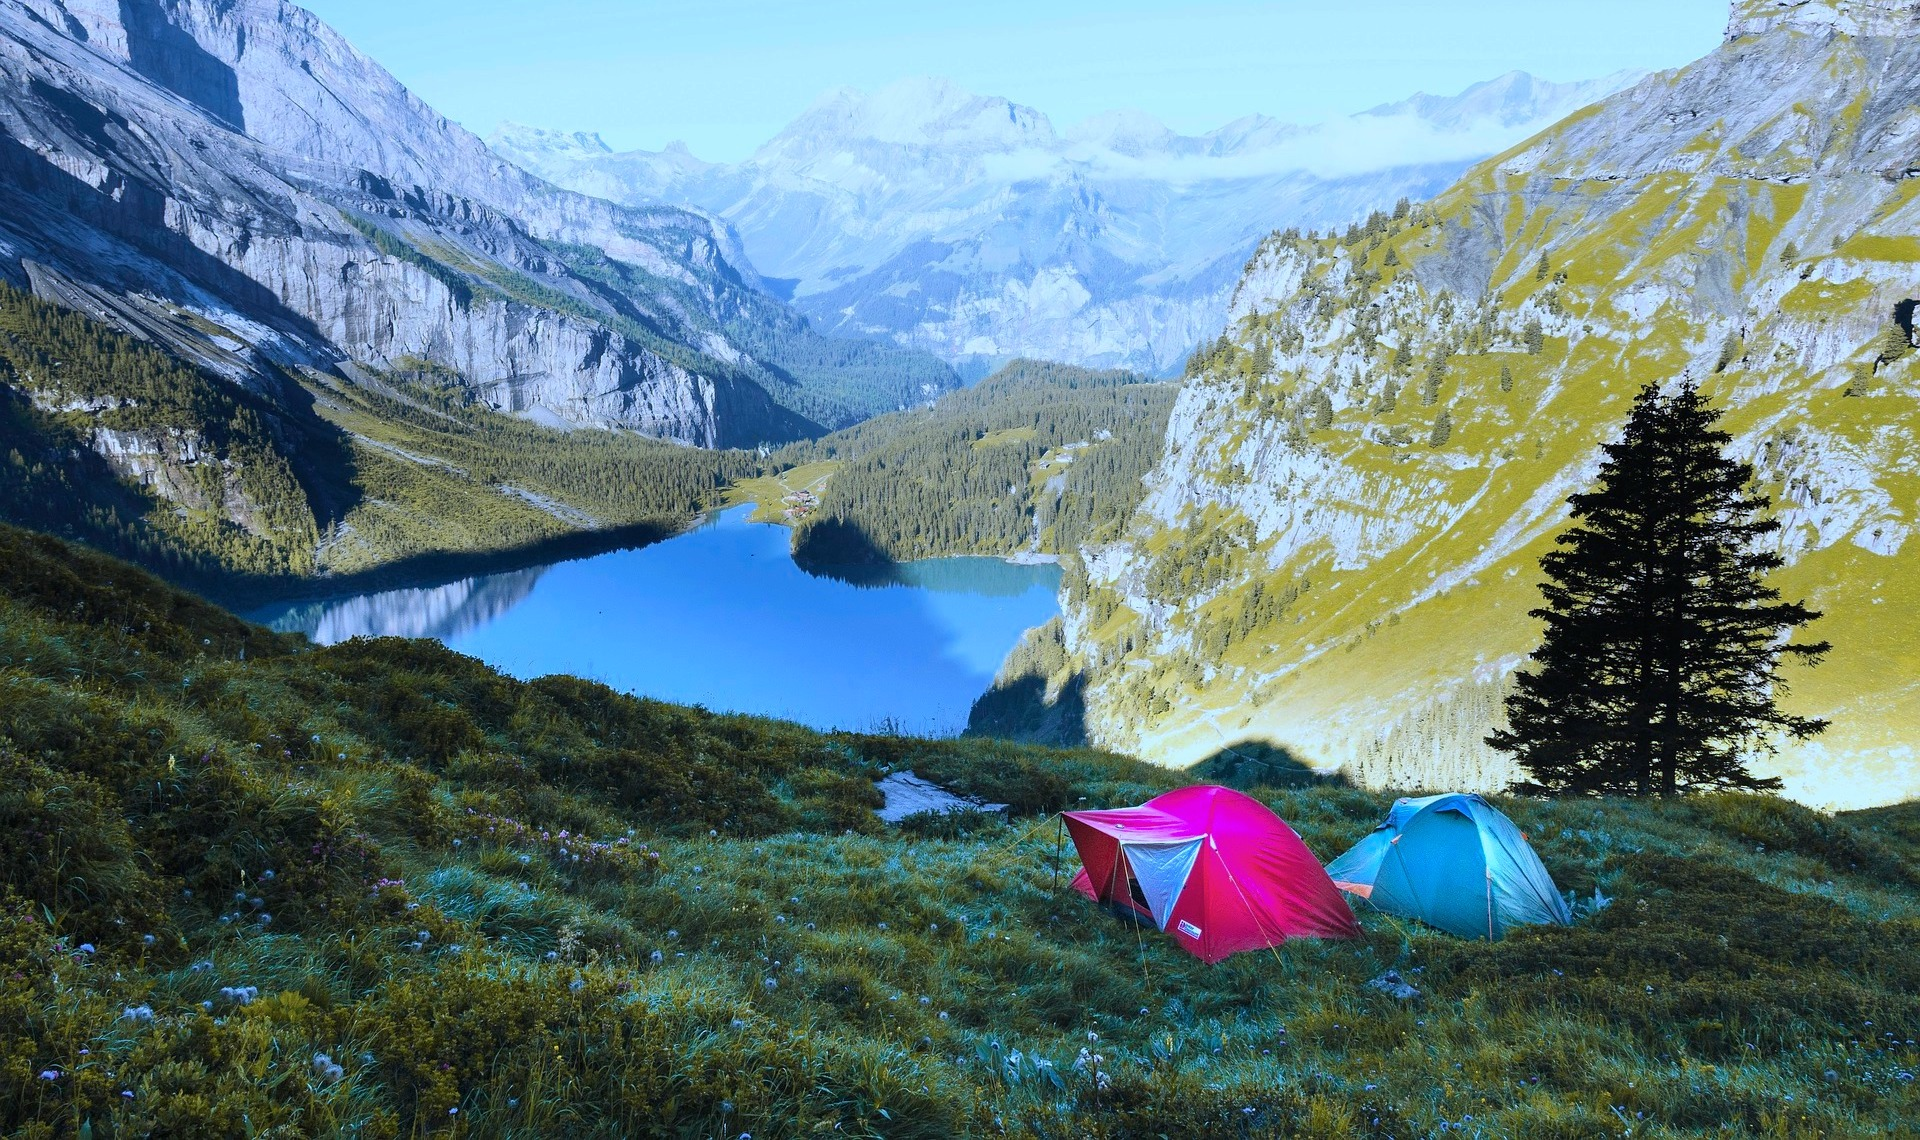 15 Backcountry Camping Essentials [Beginner's Guide] - Tents, Tools and  More!